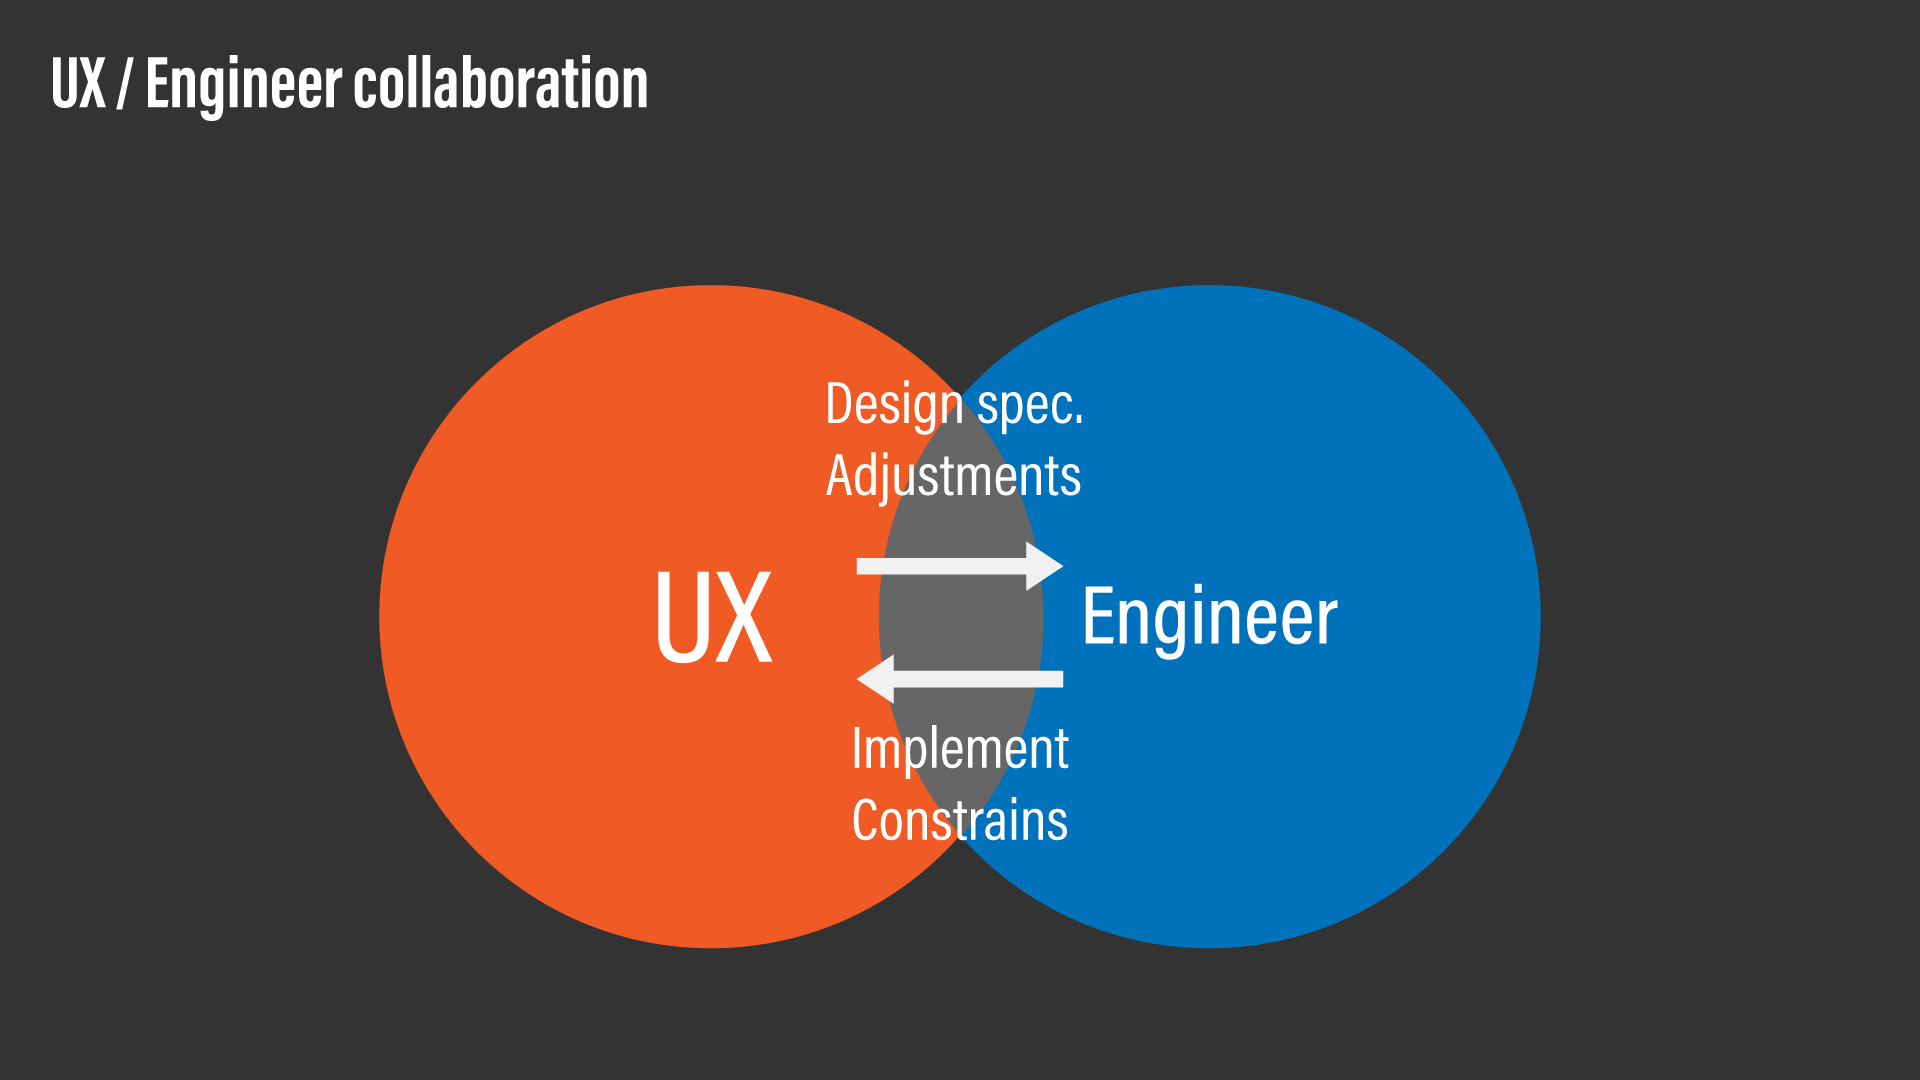 A conceptual diagram showing a criticality of UX / engineer collaboration.